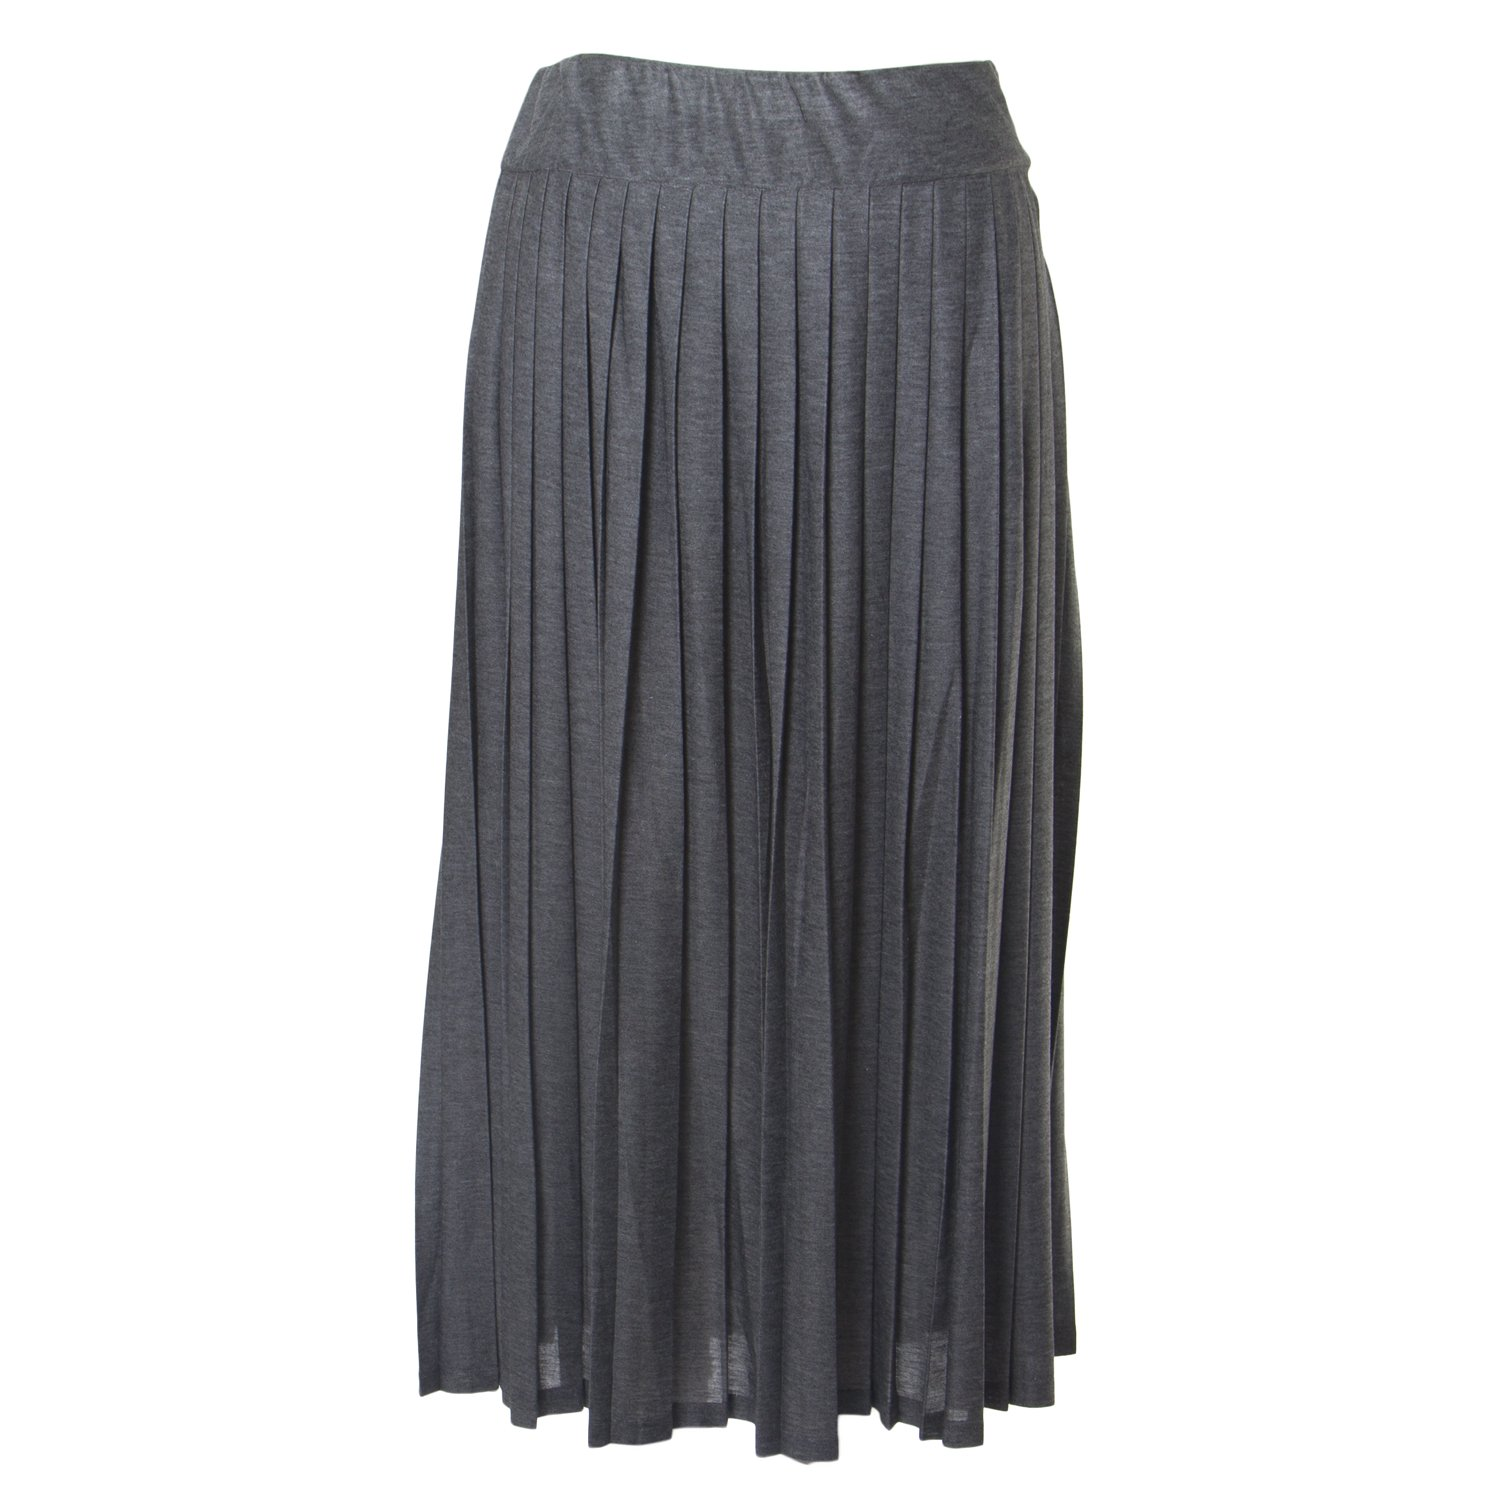 Marina Rinaldi Women's Occulto Accordion Skirt, Grey, Large